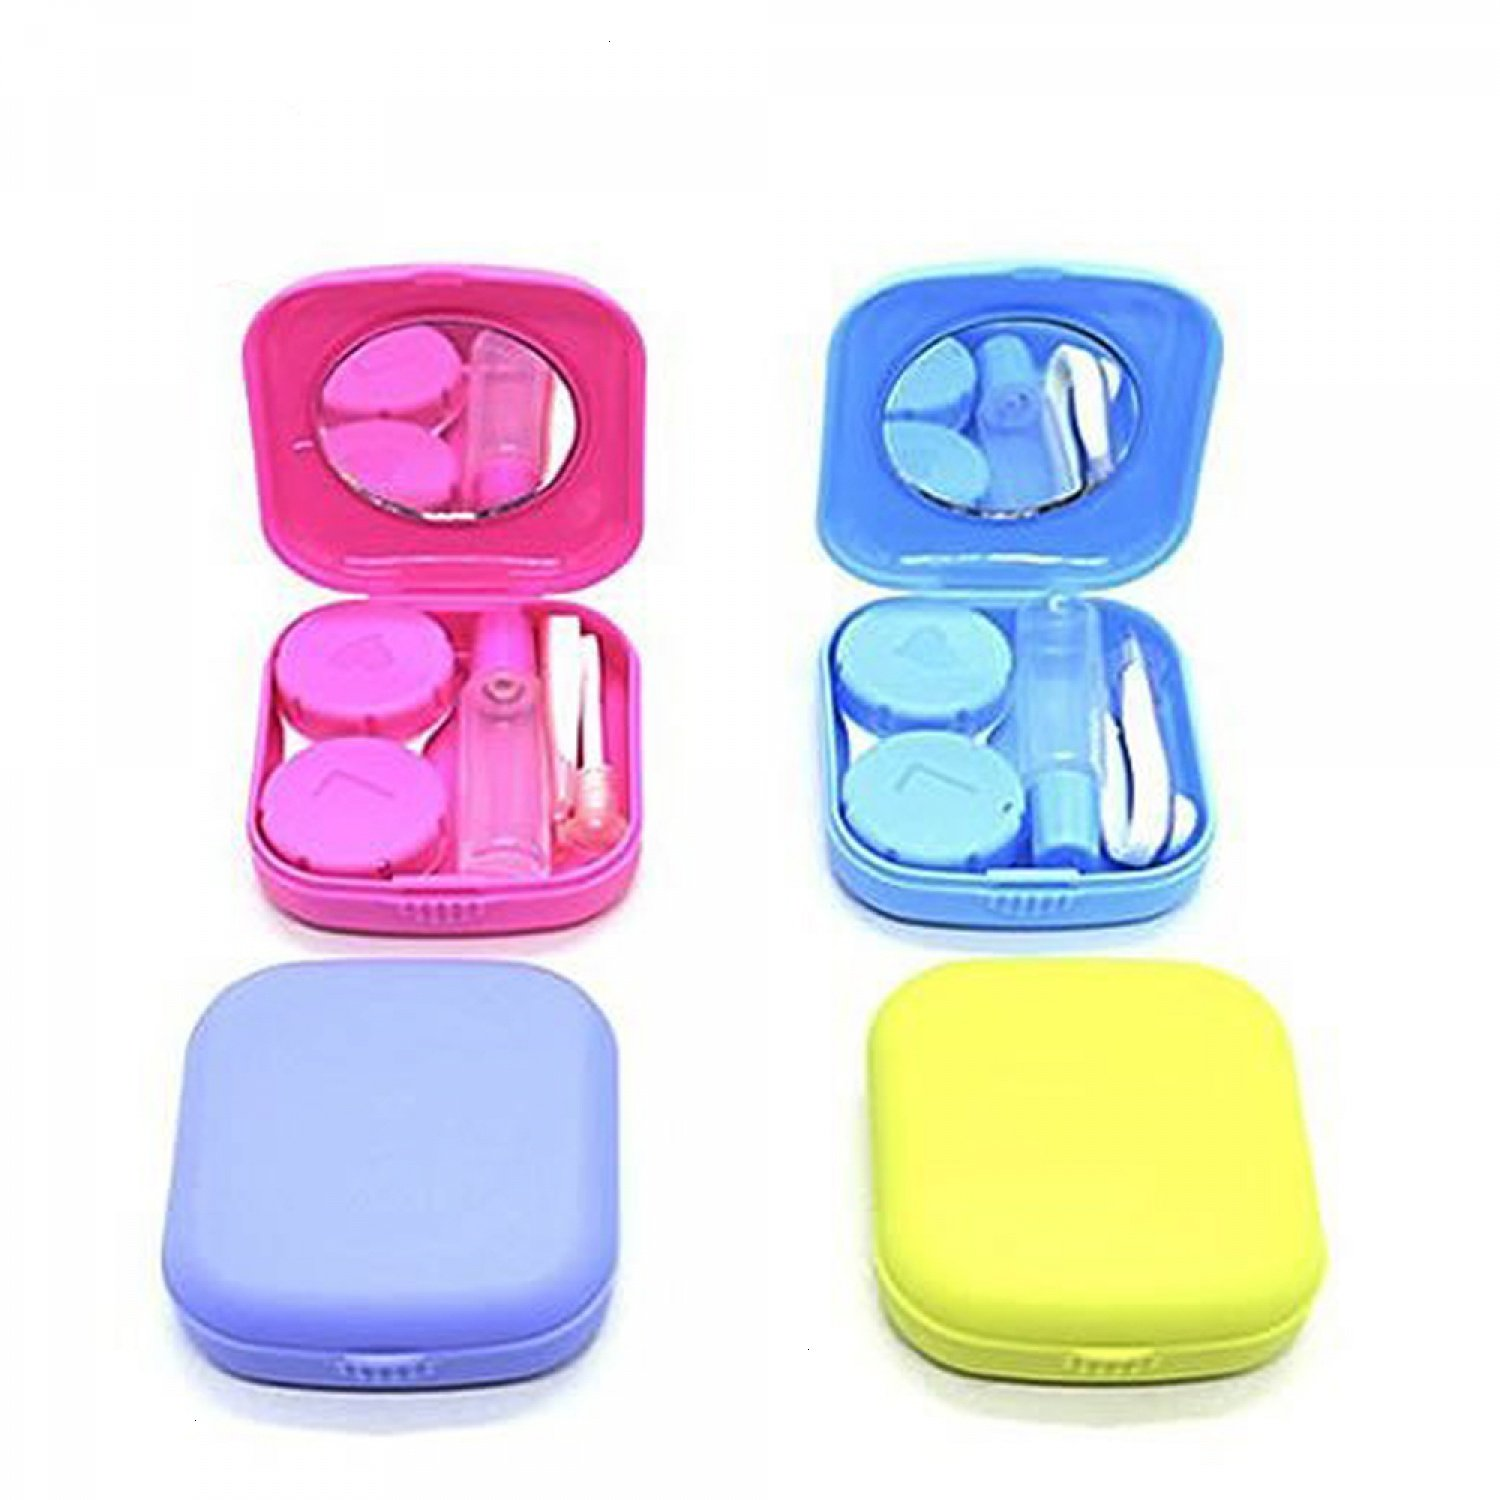 IDS Set of 4 Mini Travel Contact Lens Case Kit Holder Mirror Box, Blue, Purple, Green, Rose Red IDS RL 4332496186